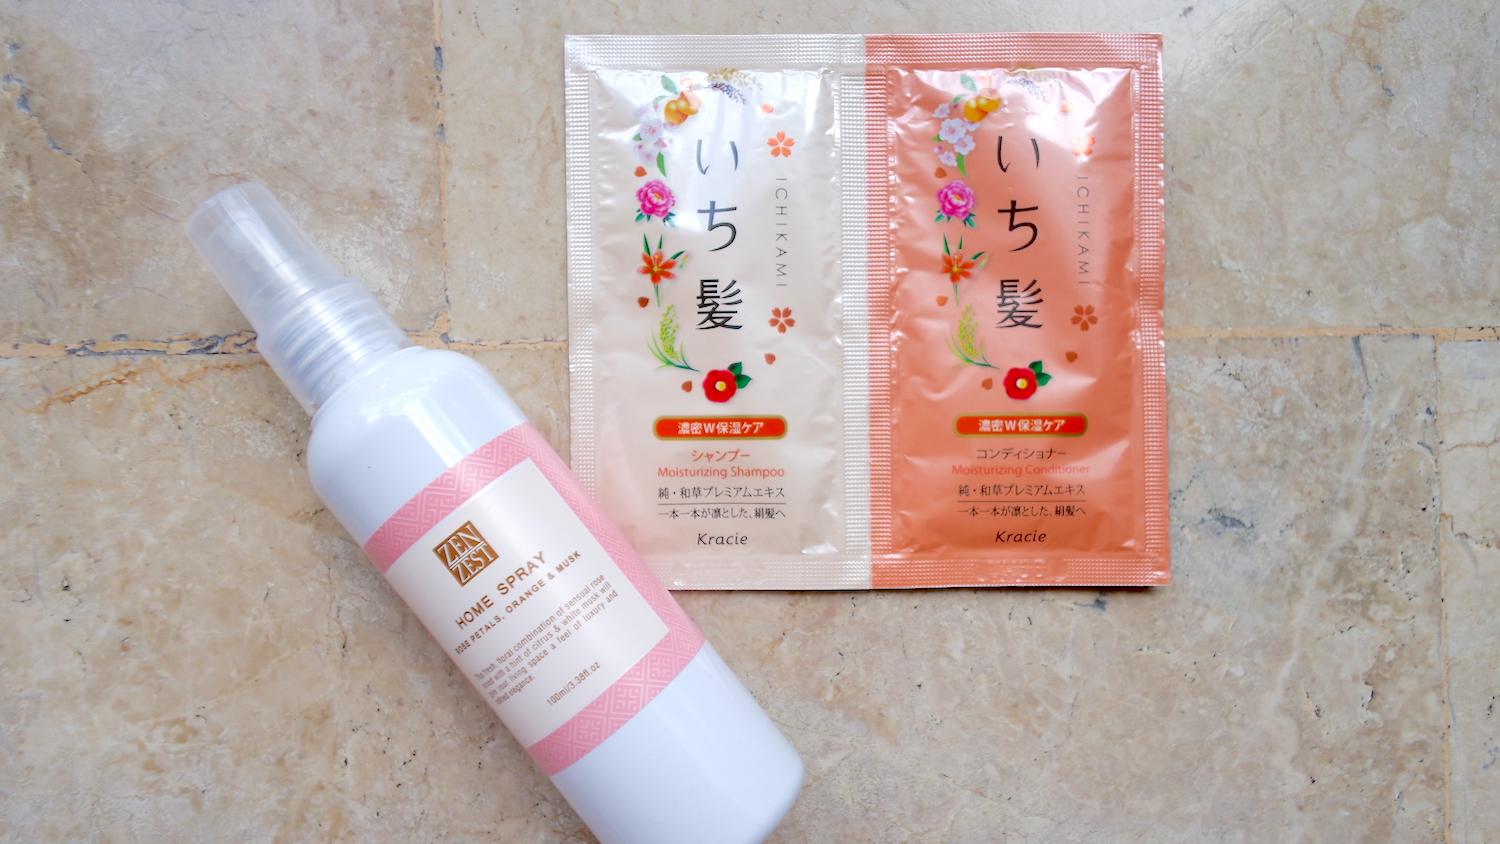 Zen Zest Home Spray in Rose Petals, Orange and Mash, PHP 150 / 100ml,   Kracie Ichikami Shampoo and Conditioner Sachet Set, PHP 80 / 10ml each